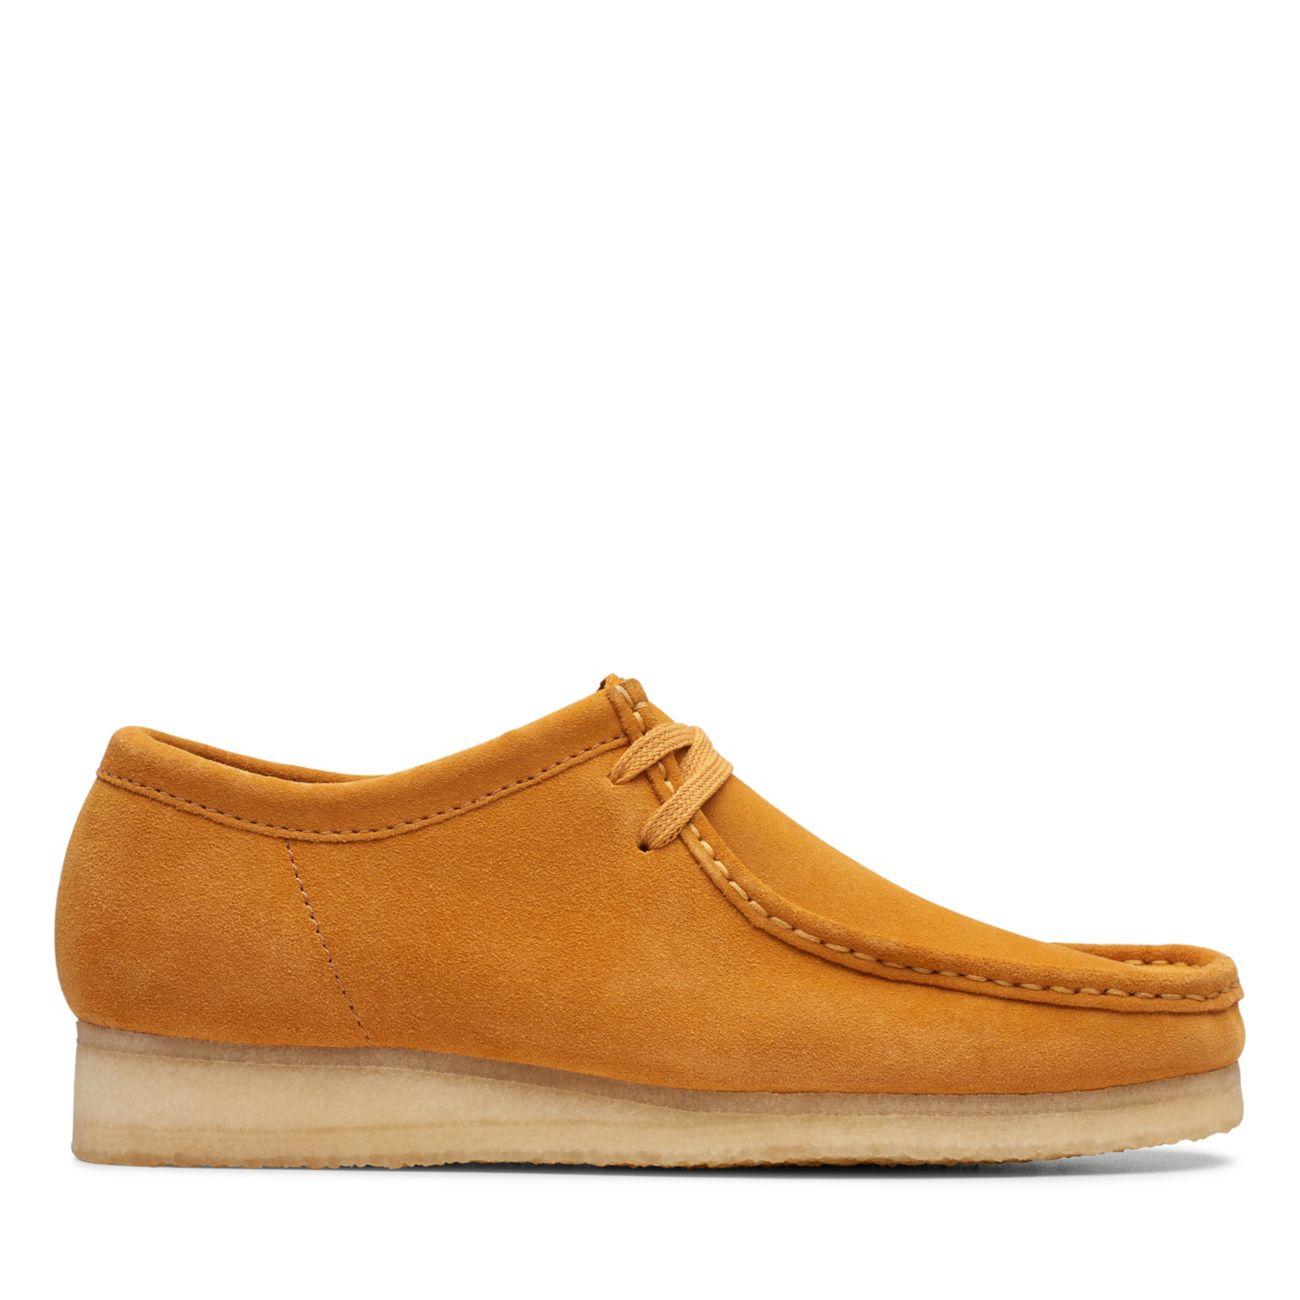 fb46d60e6ee11c Wallabee Tumeric Suede - Mens Originals - Clarks® Shoes Official Site |  Clarks